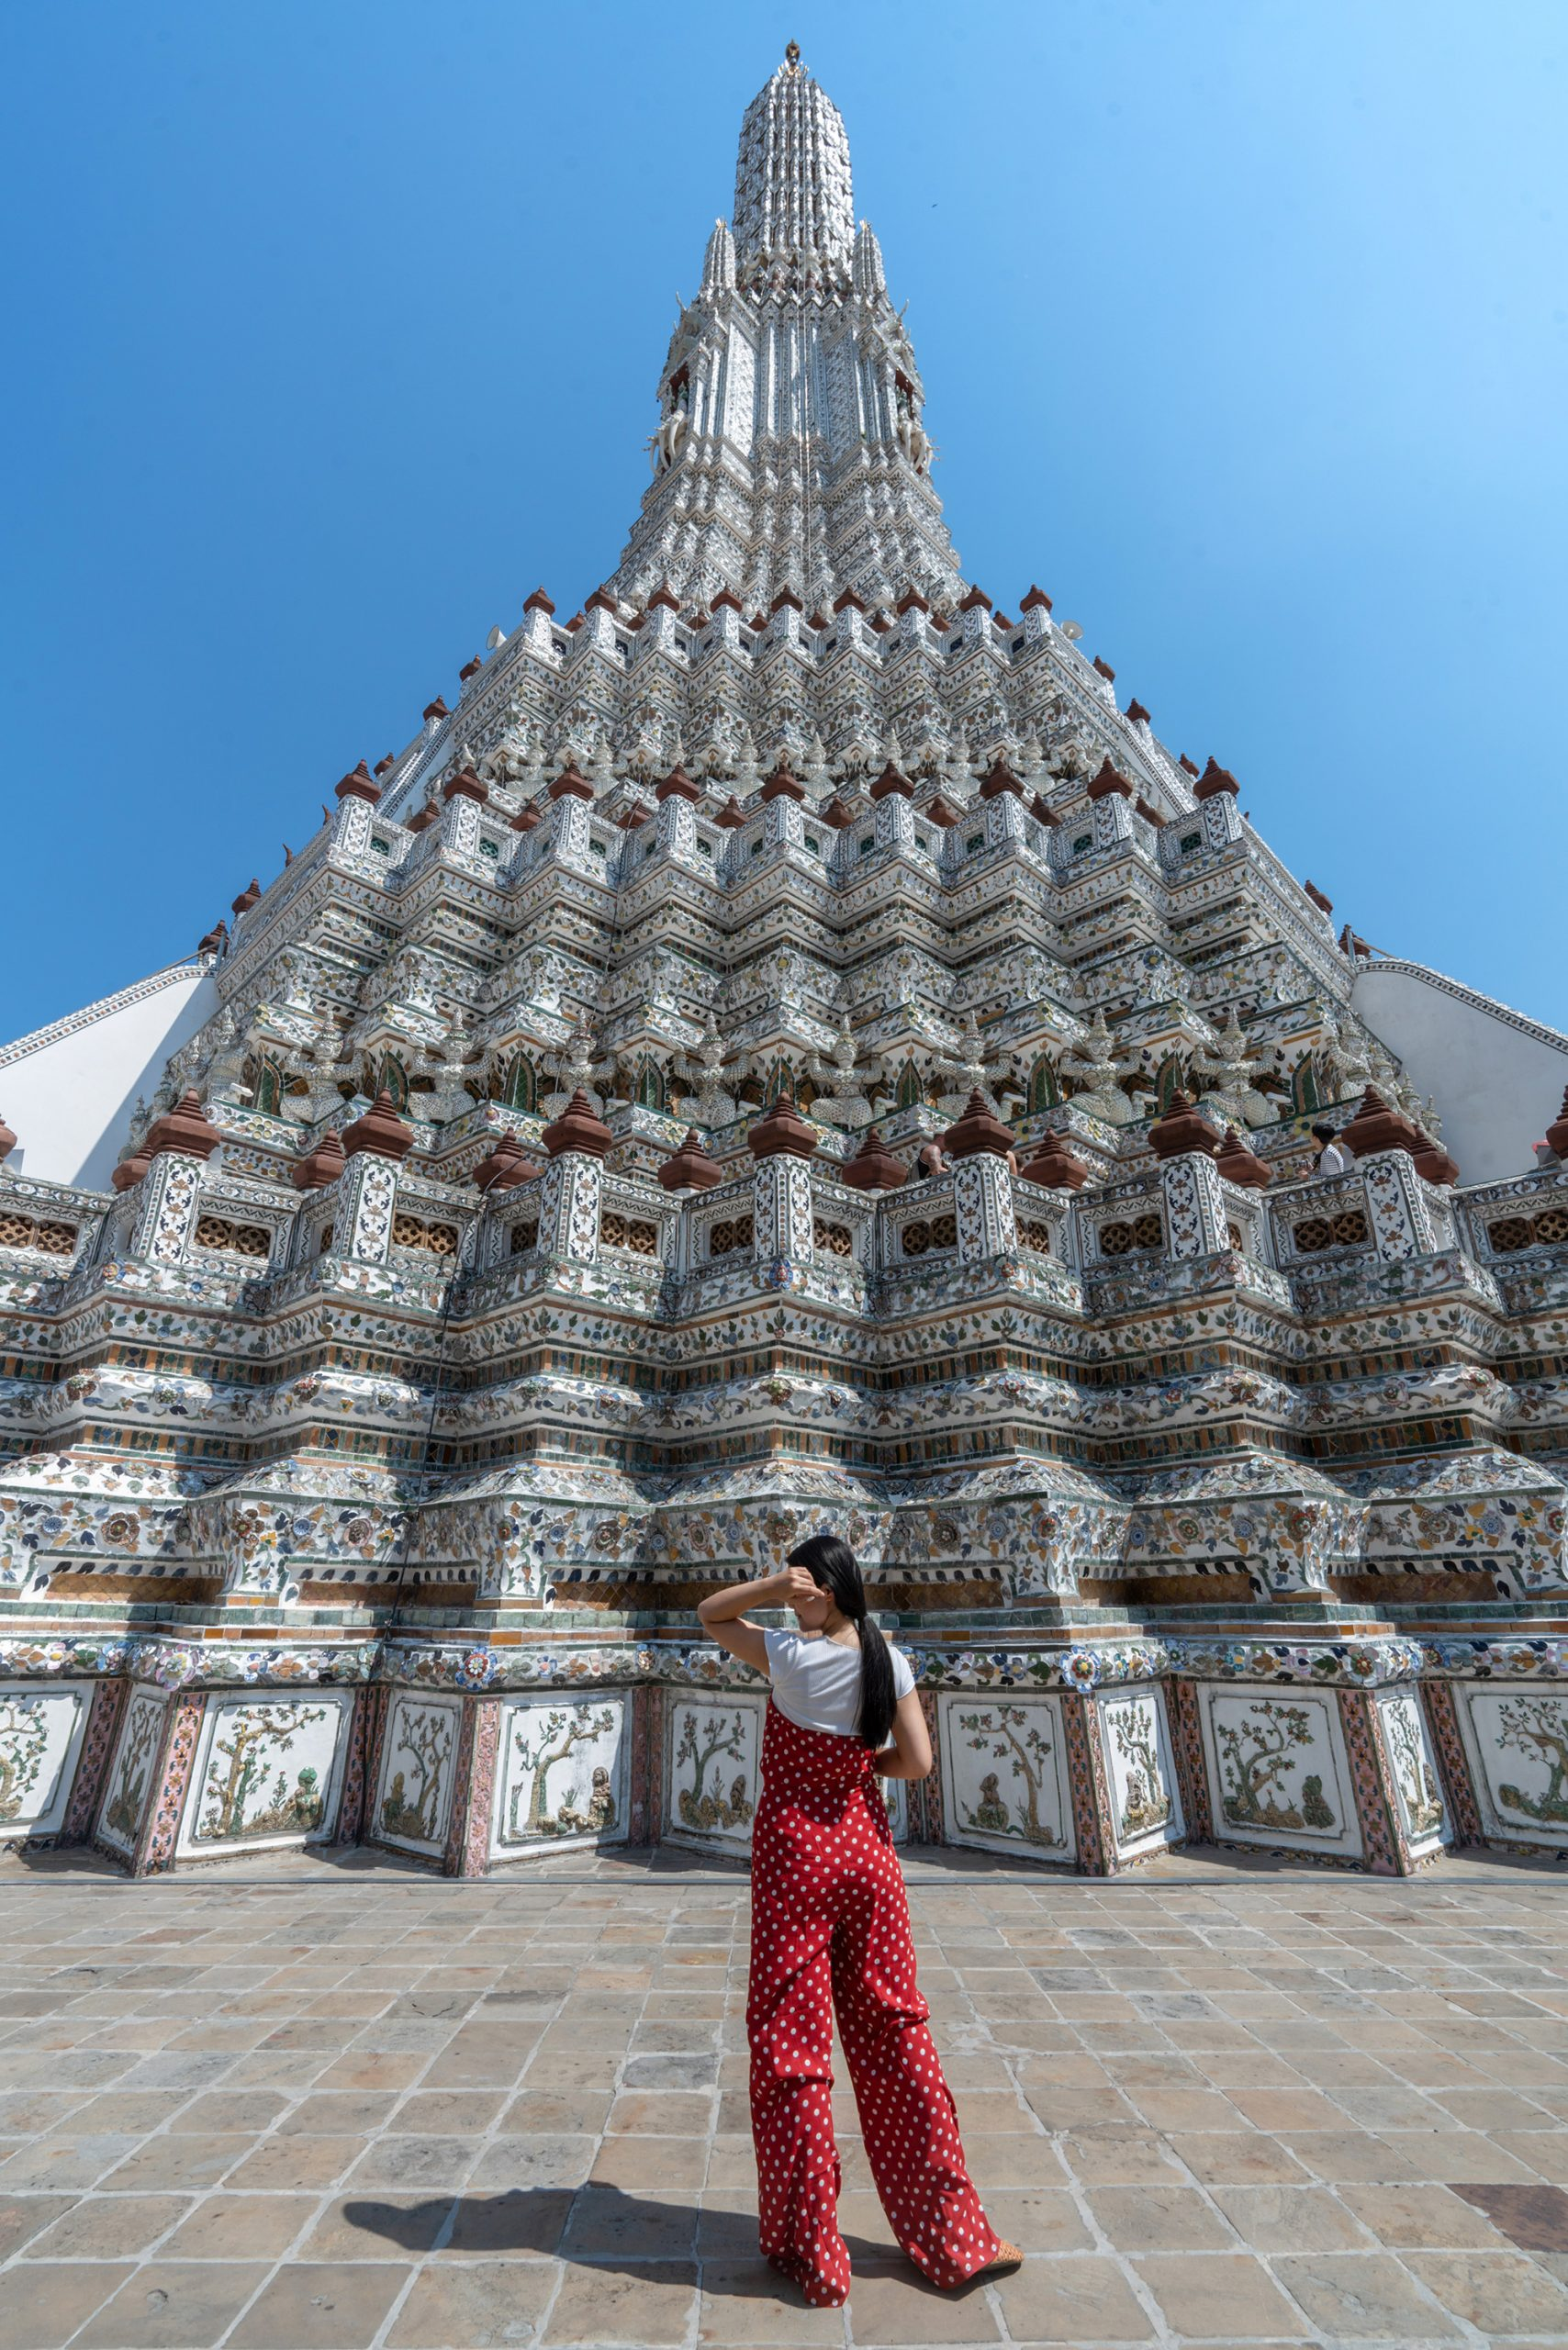 Beautiful Wat Arun temple during the day.